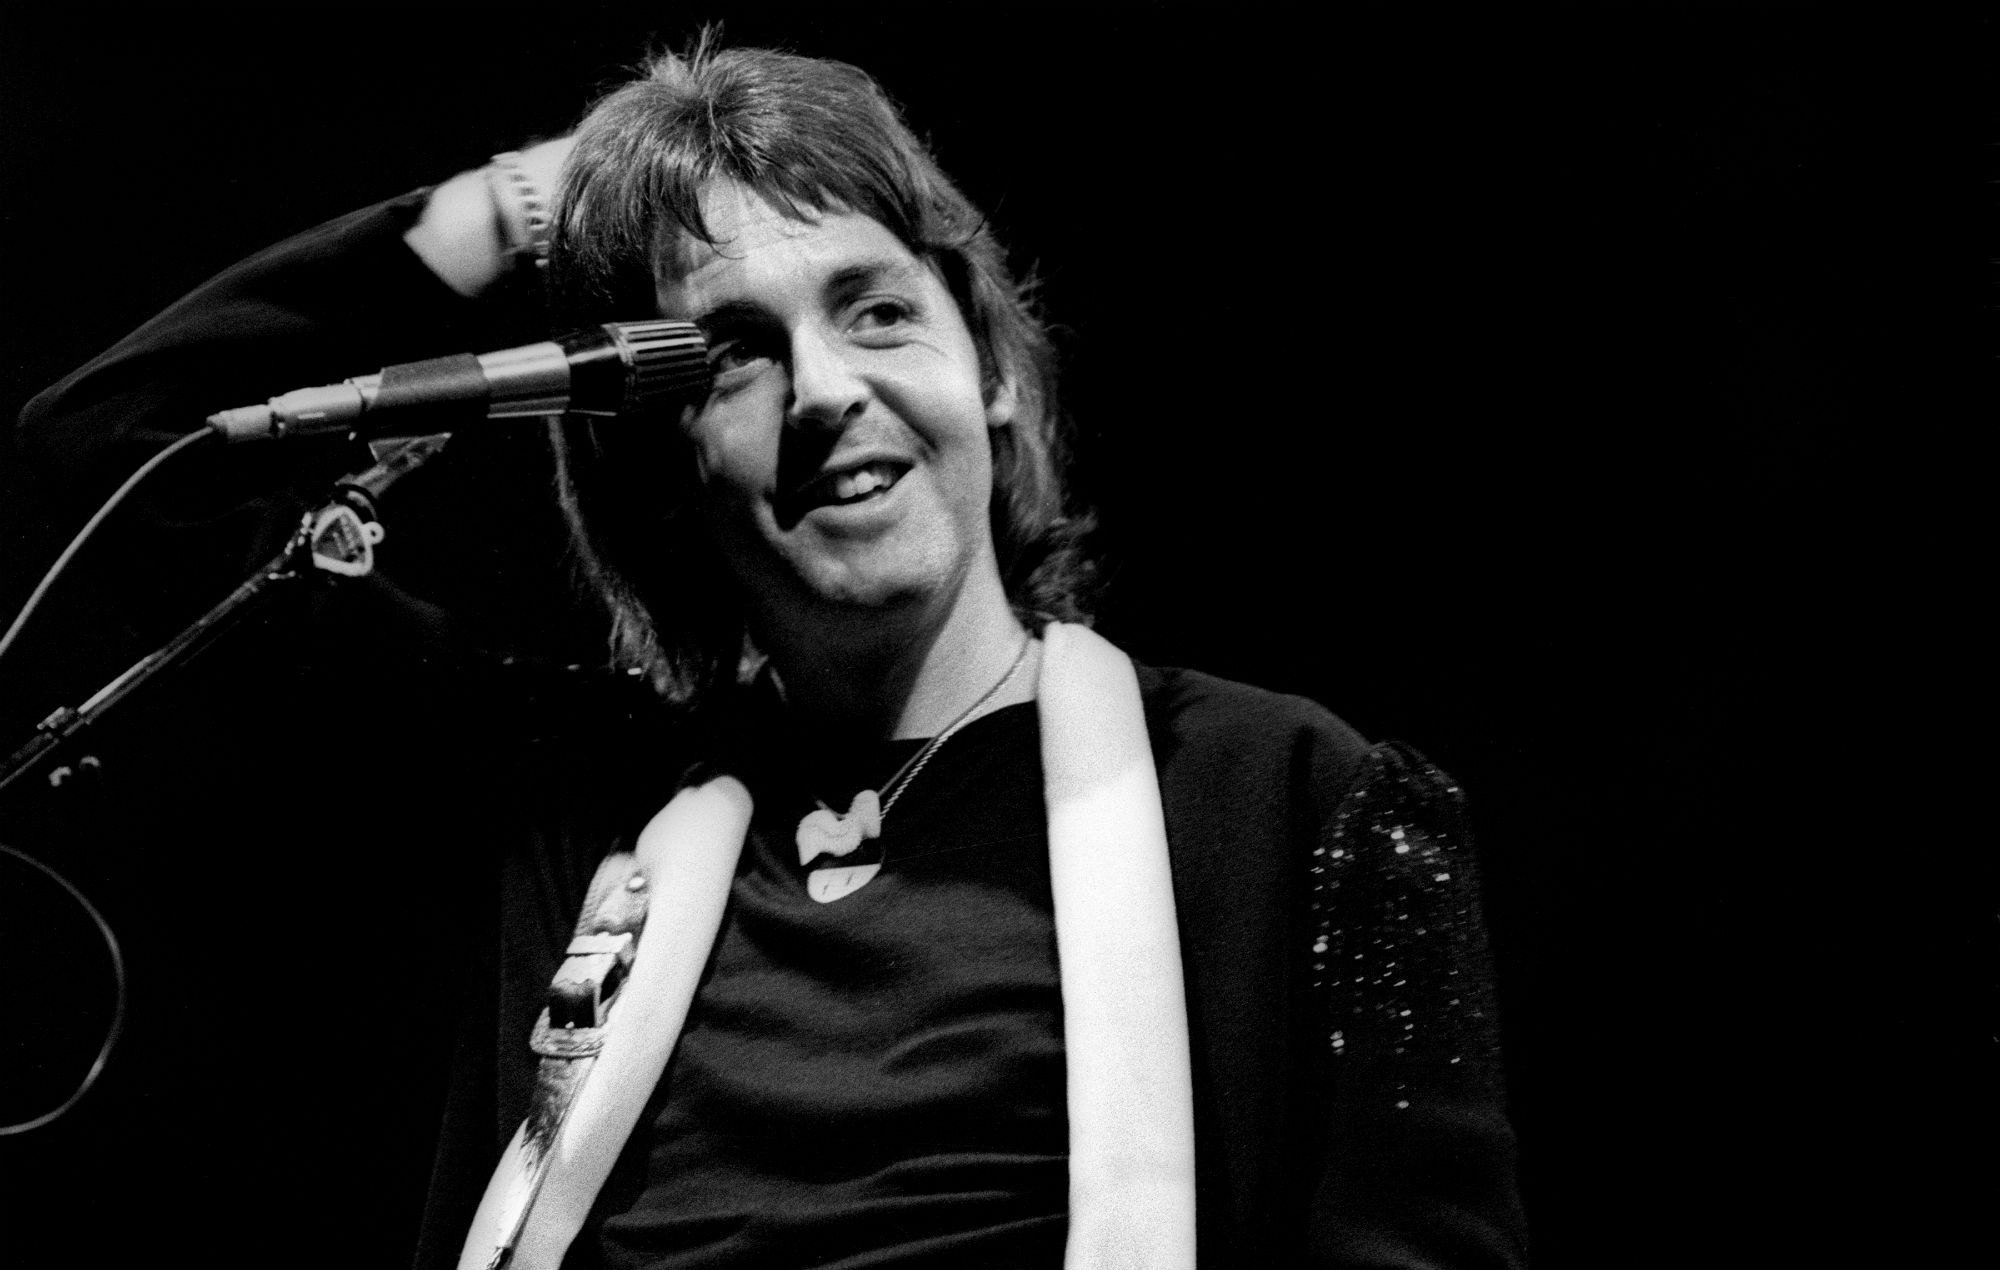 paul mccartney announces super deluxe 39 wings 39 archive reissues shares new version of 39 live and. Black Bedroom Furniture Sets. Home Design Ideas